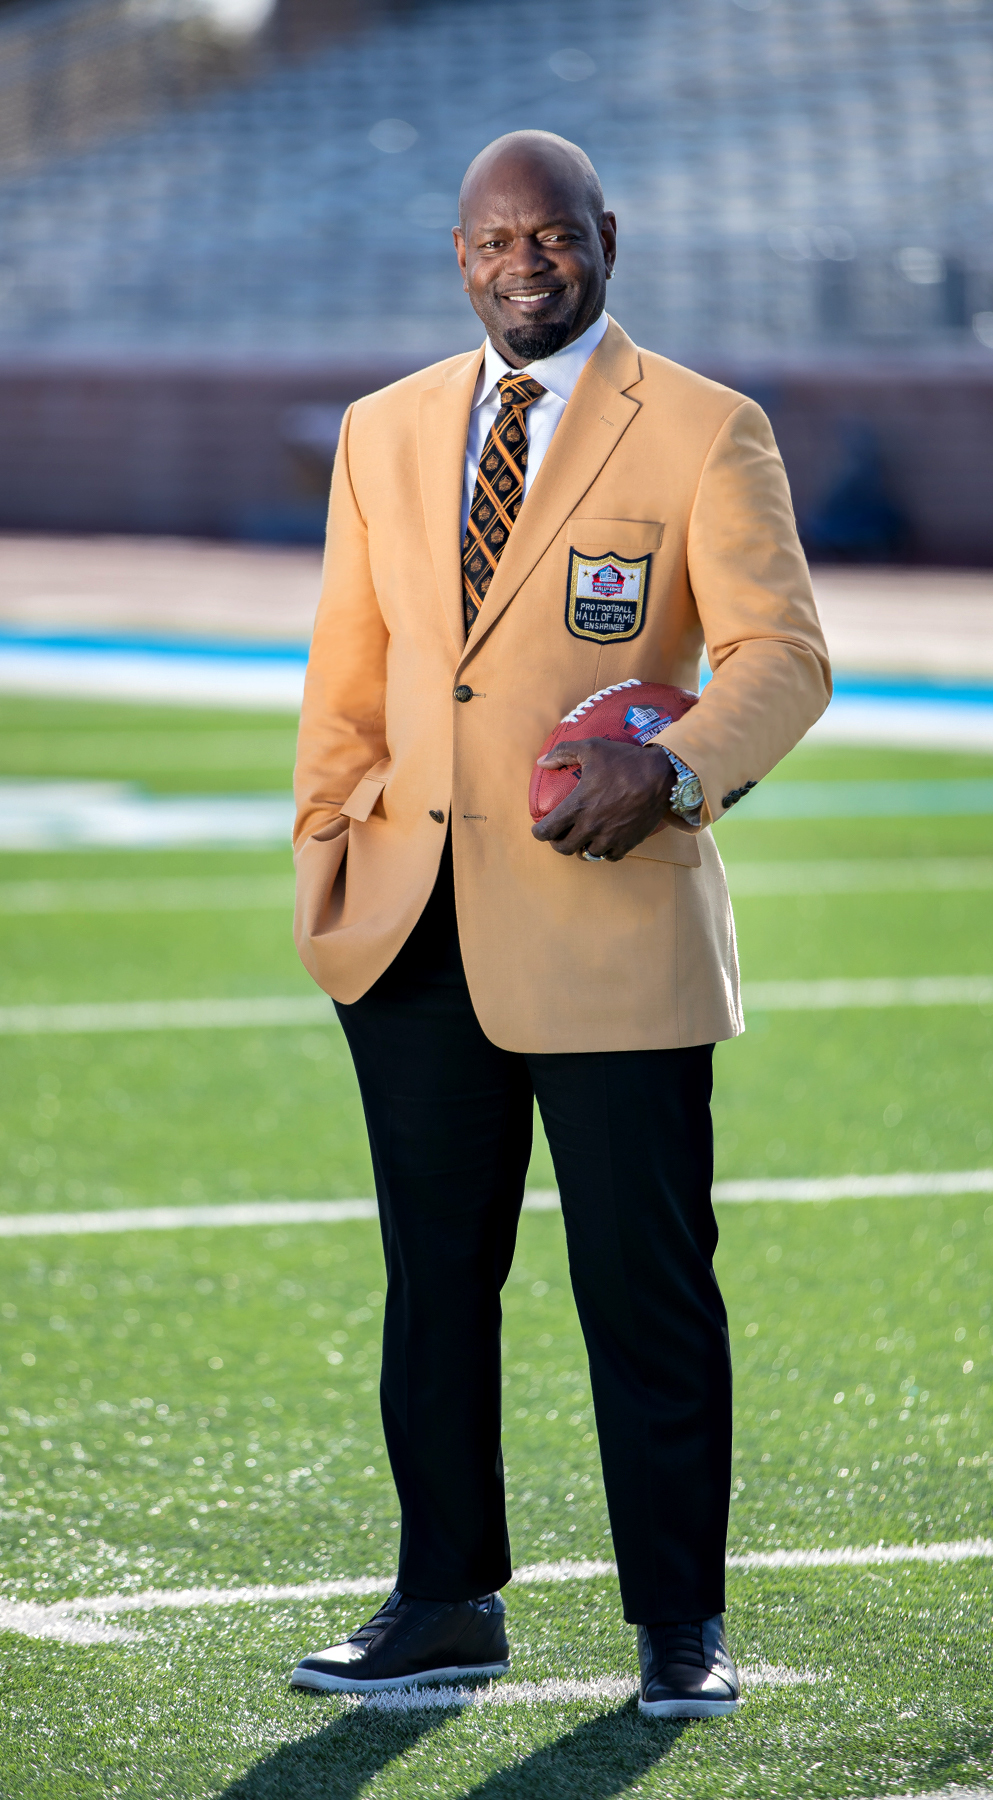 Haggar Honorary HOF Dad Emmitt Smith.jpg